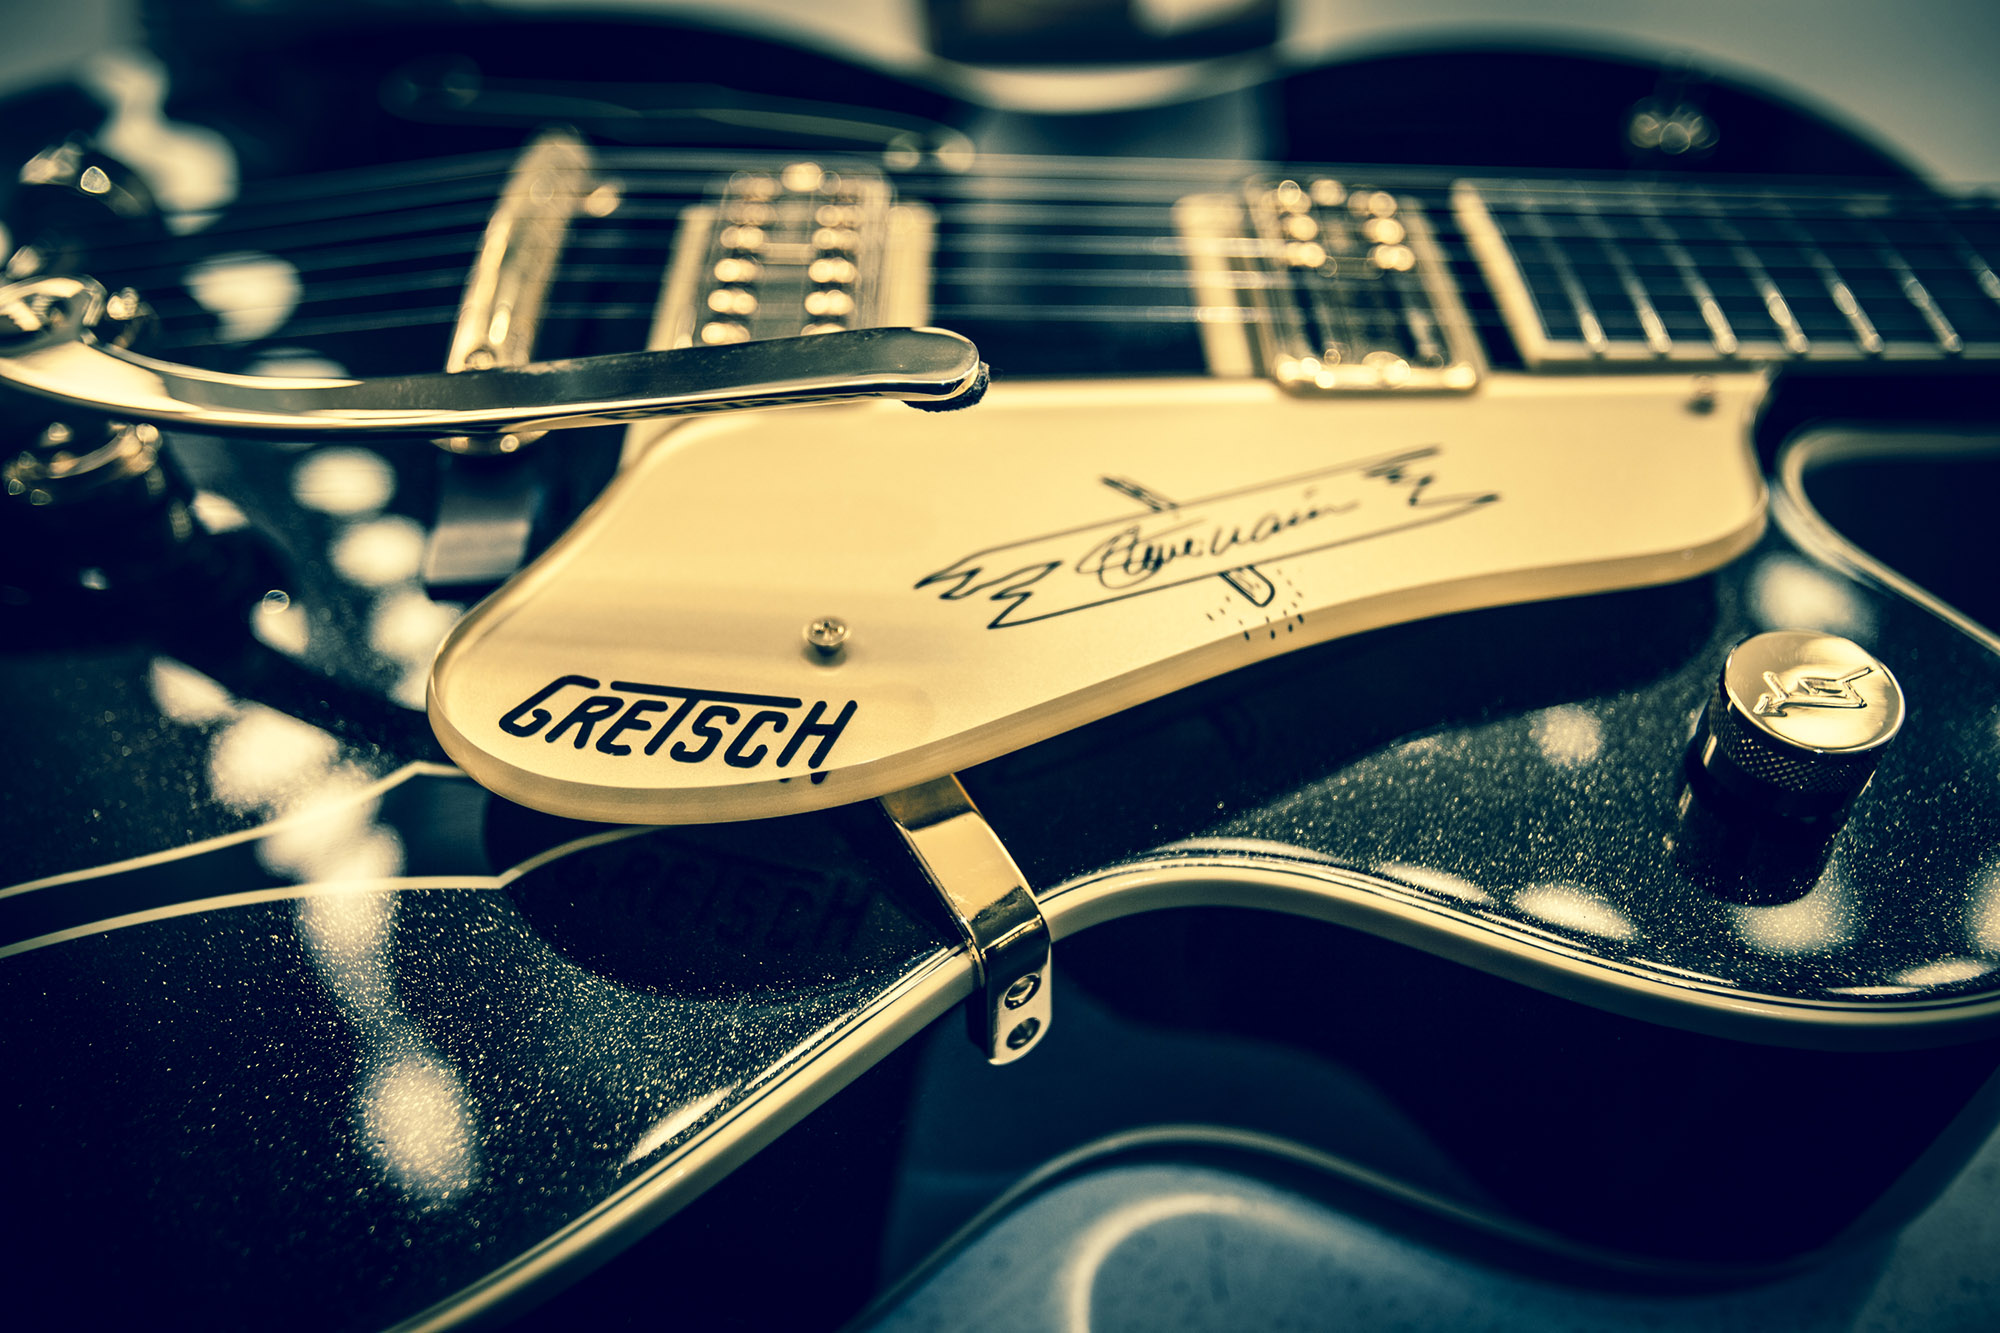 A Dream Comes True for Steve Wariner with his New Signature Gretsch Model